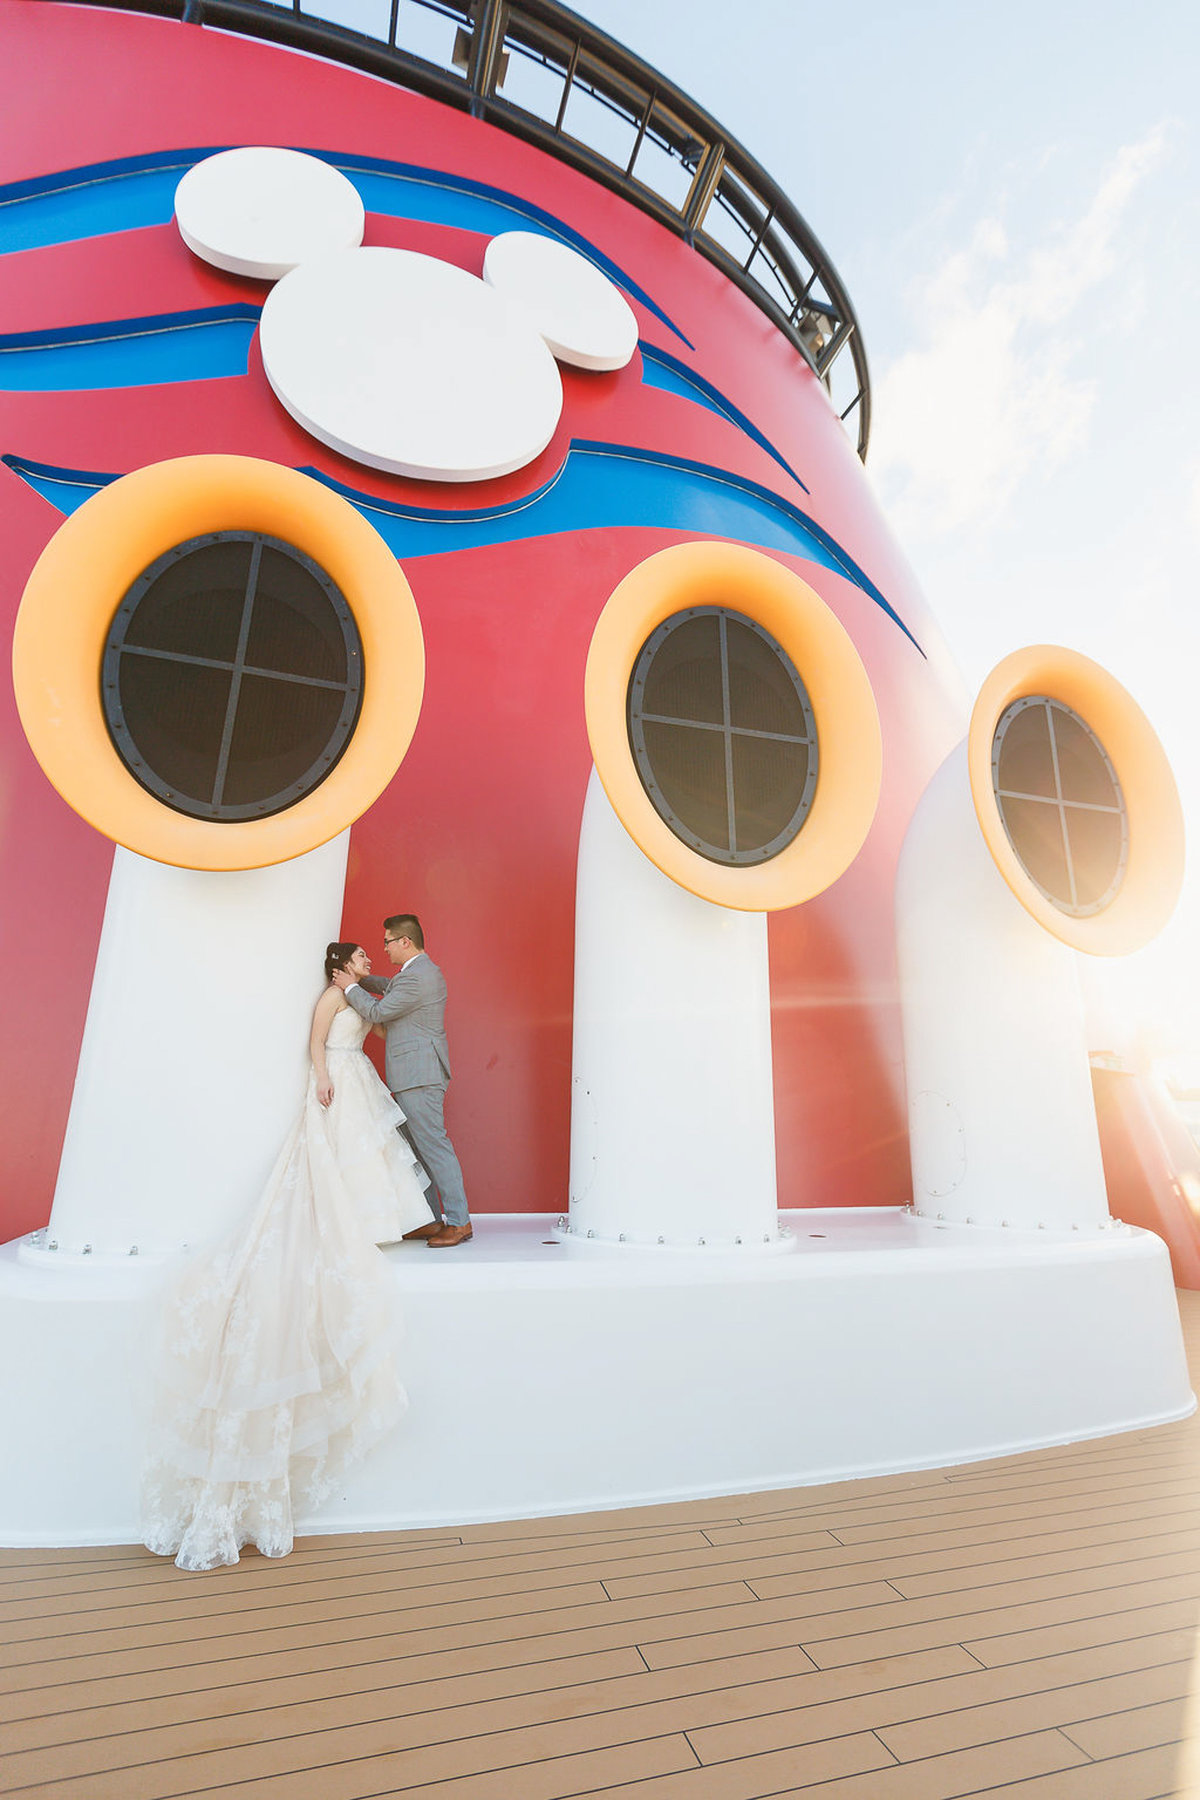 Disney-Cruise-Bride-Disney-Dream-On-Board-Wedding-Nassau-Bahamas-Jessica-Lea-IMG-850